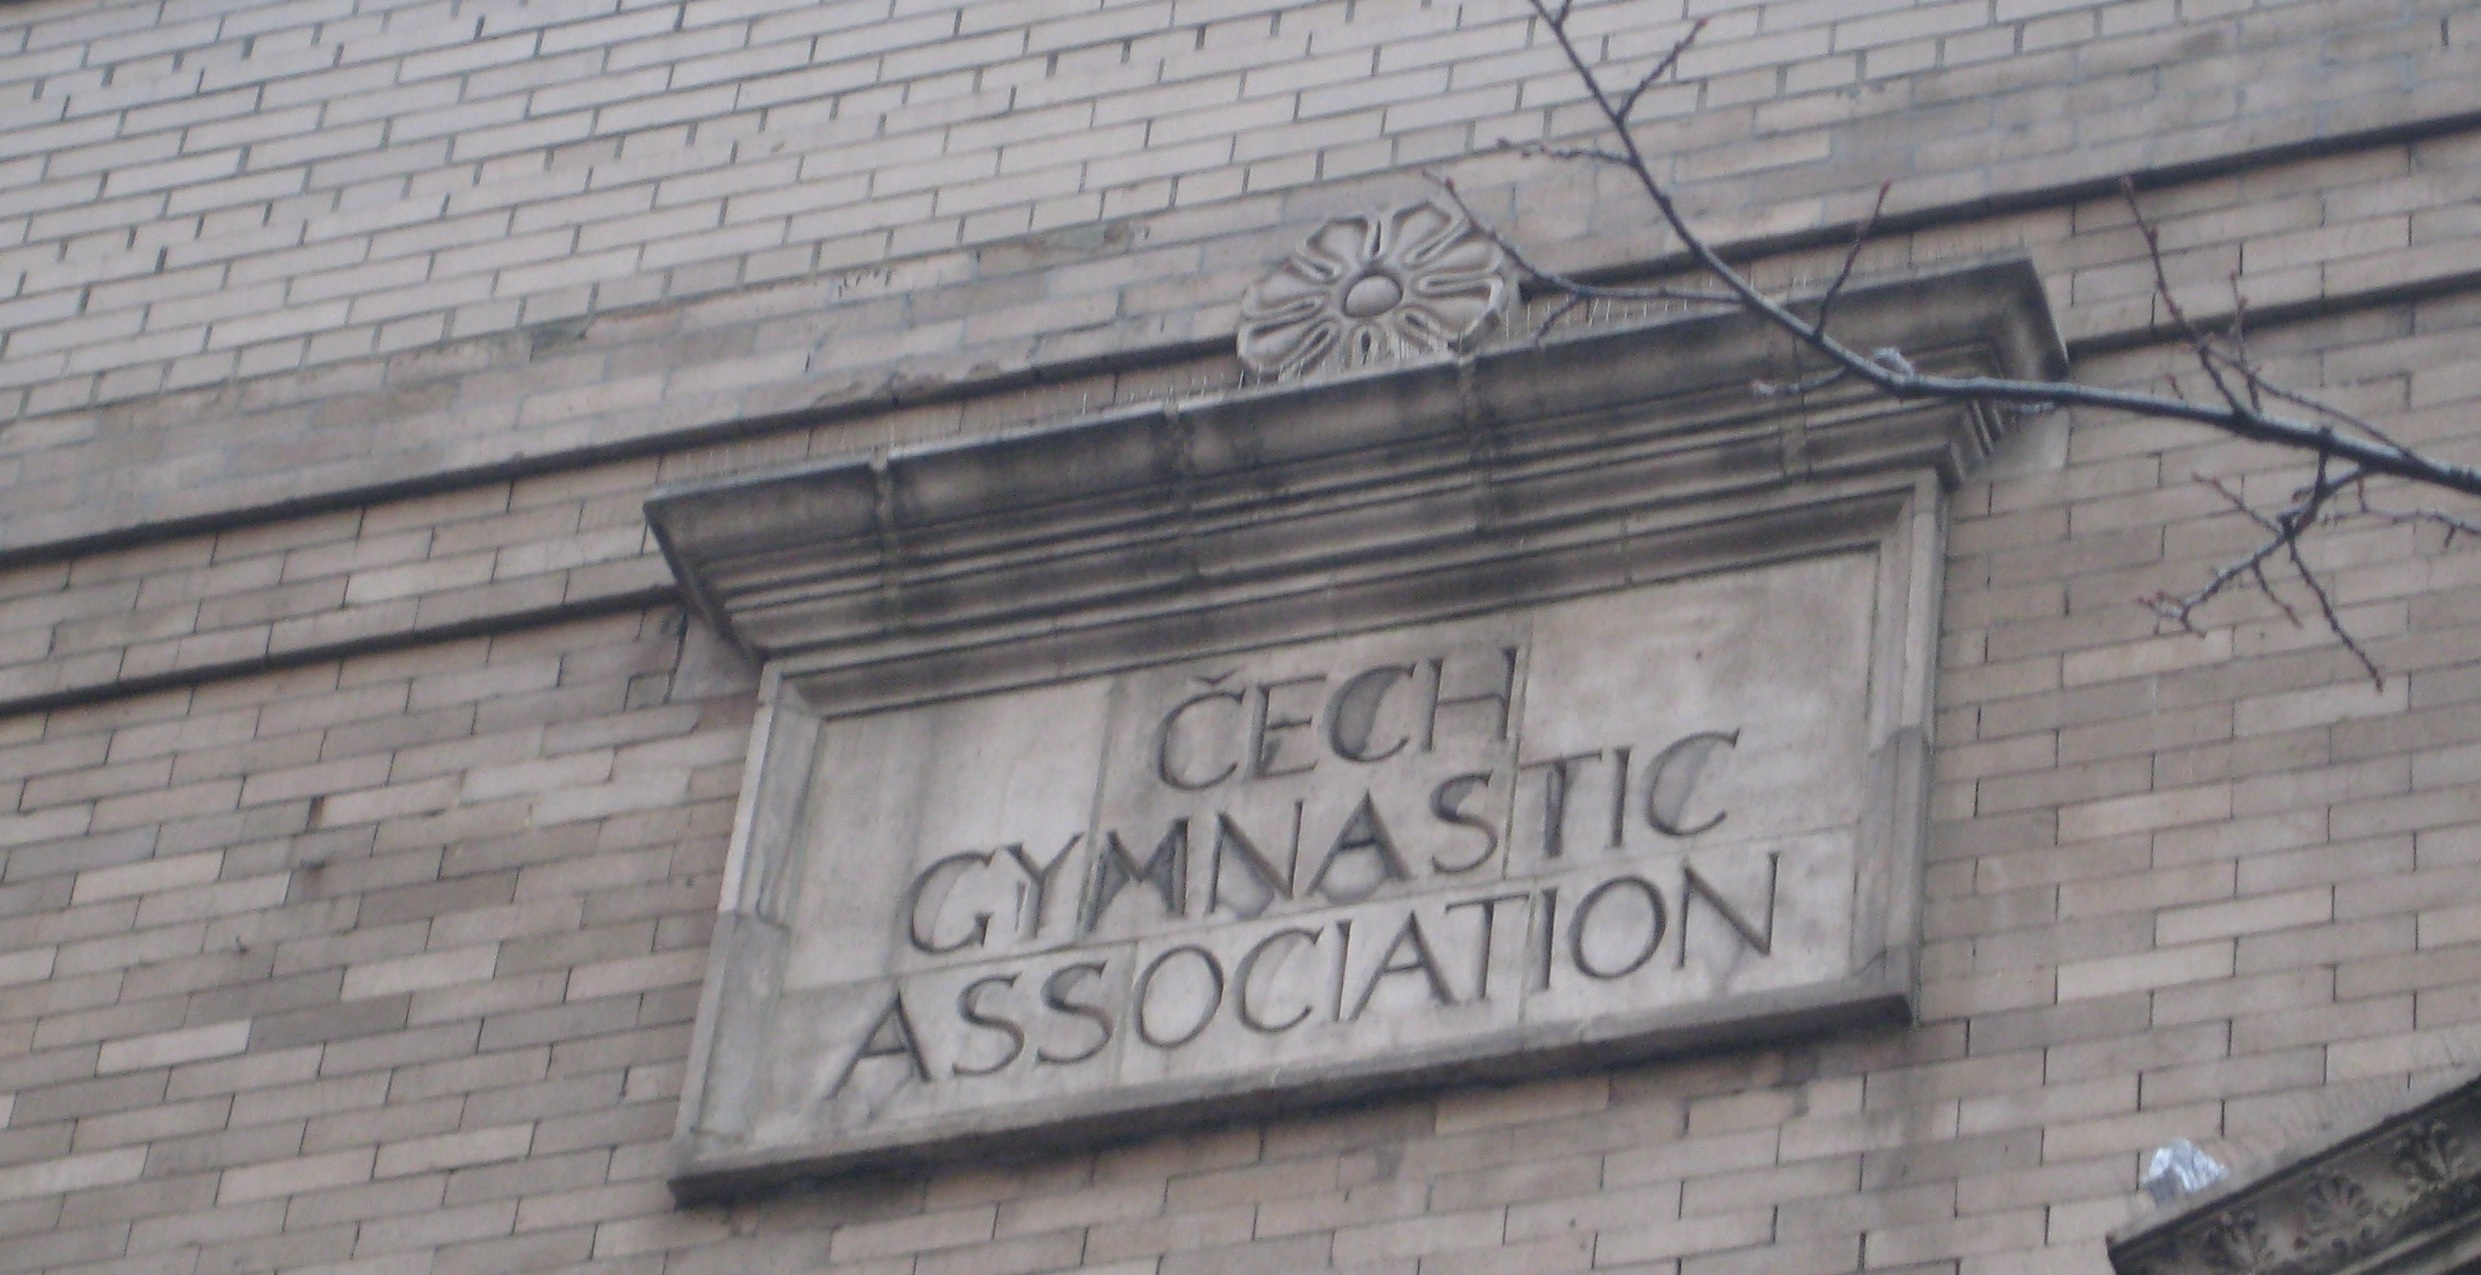 czechgymnasticassociation2 Age: 53 | seeks gay dating in